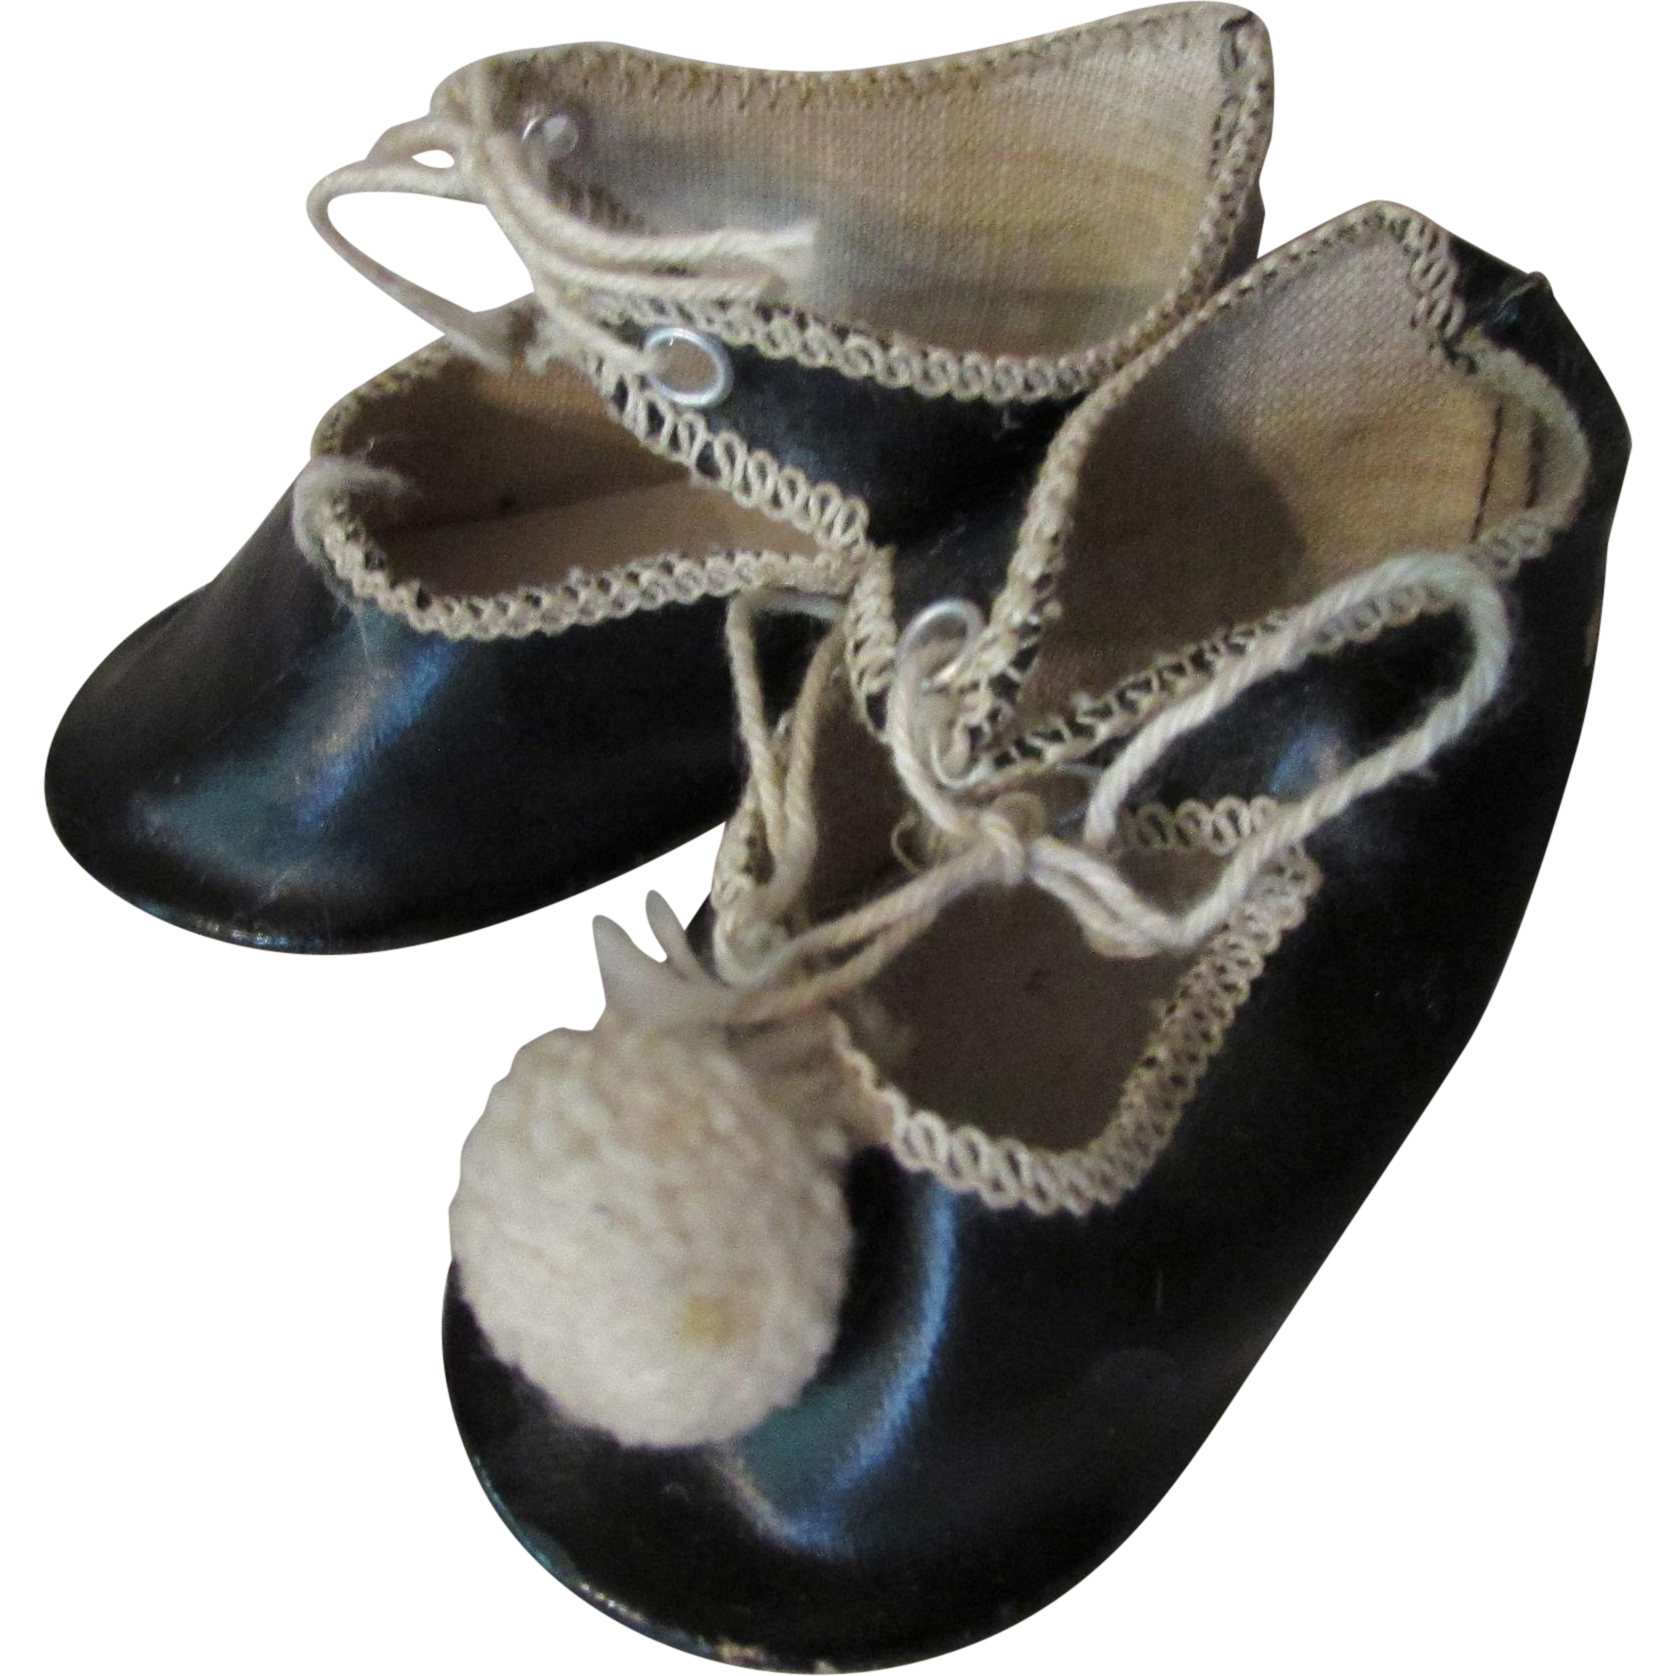 doll shoes germany in black with white stitching from